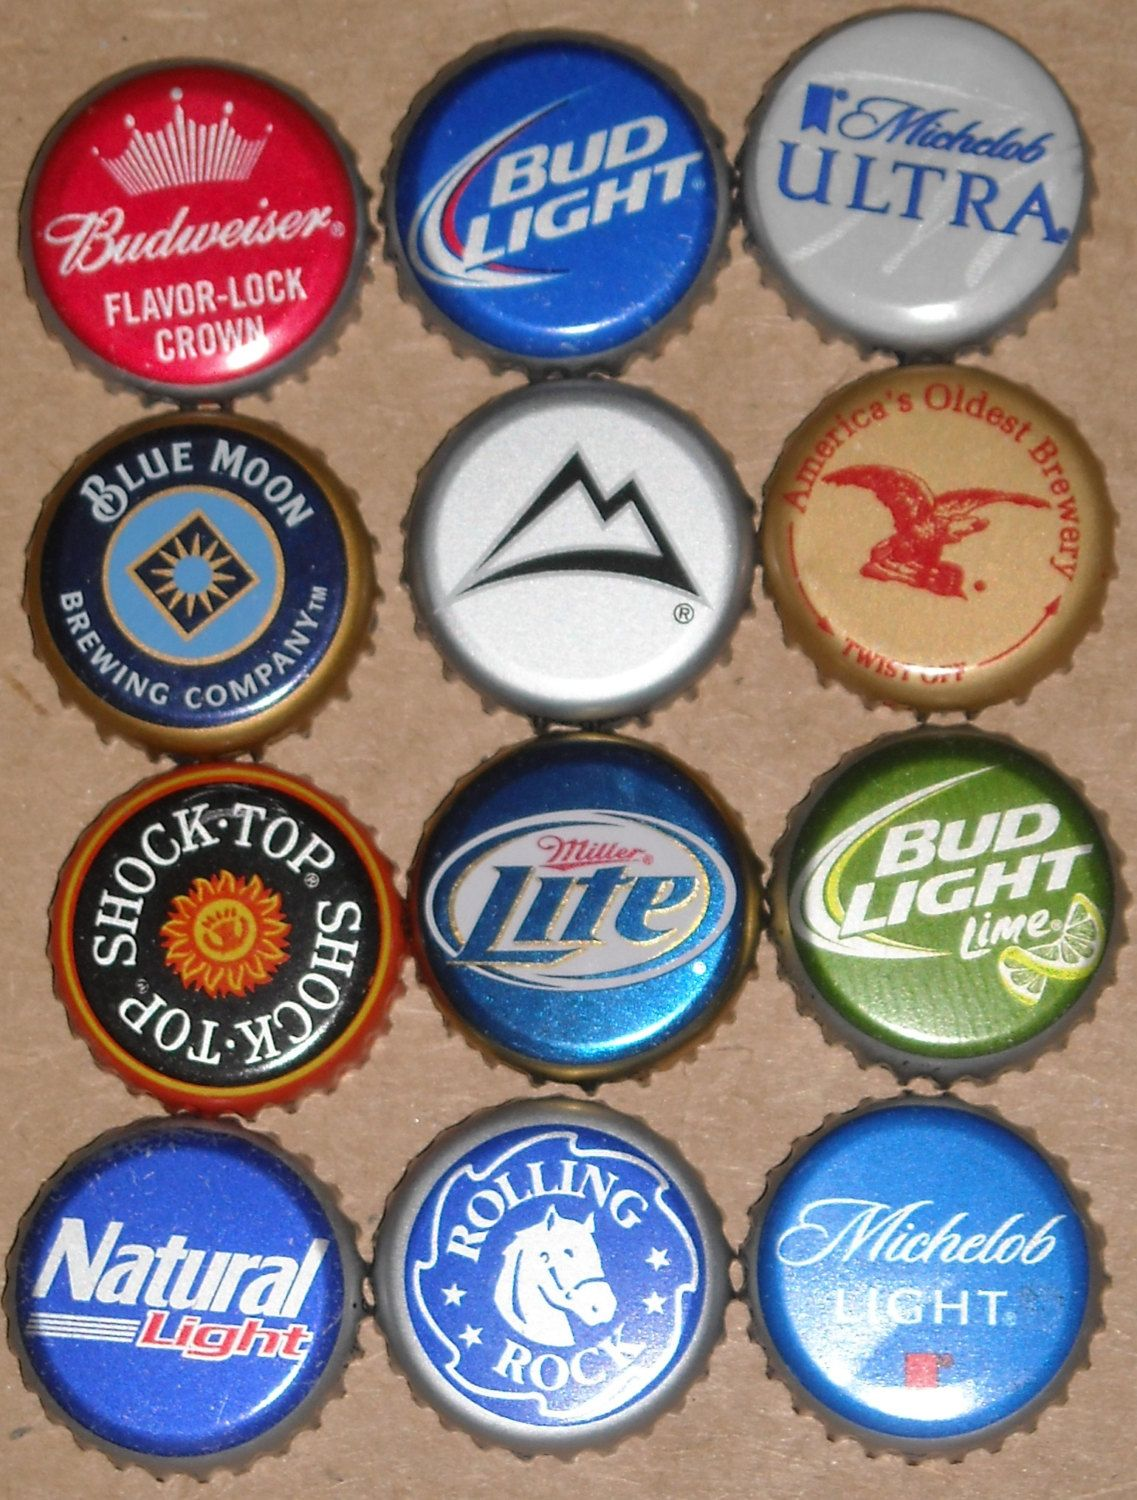 The Beer Bottle Caps Available Include Bud Light Budweiser Miller Lite Coors Light Michelob Ultra Rolling Rock Yuengling Disenos De Unas Cake De Regalos